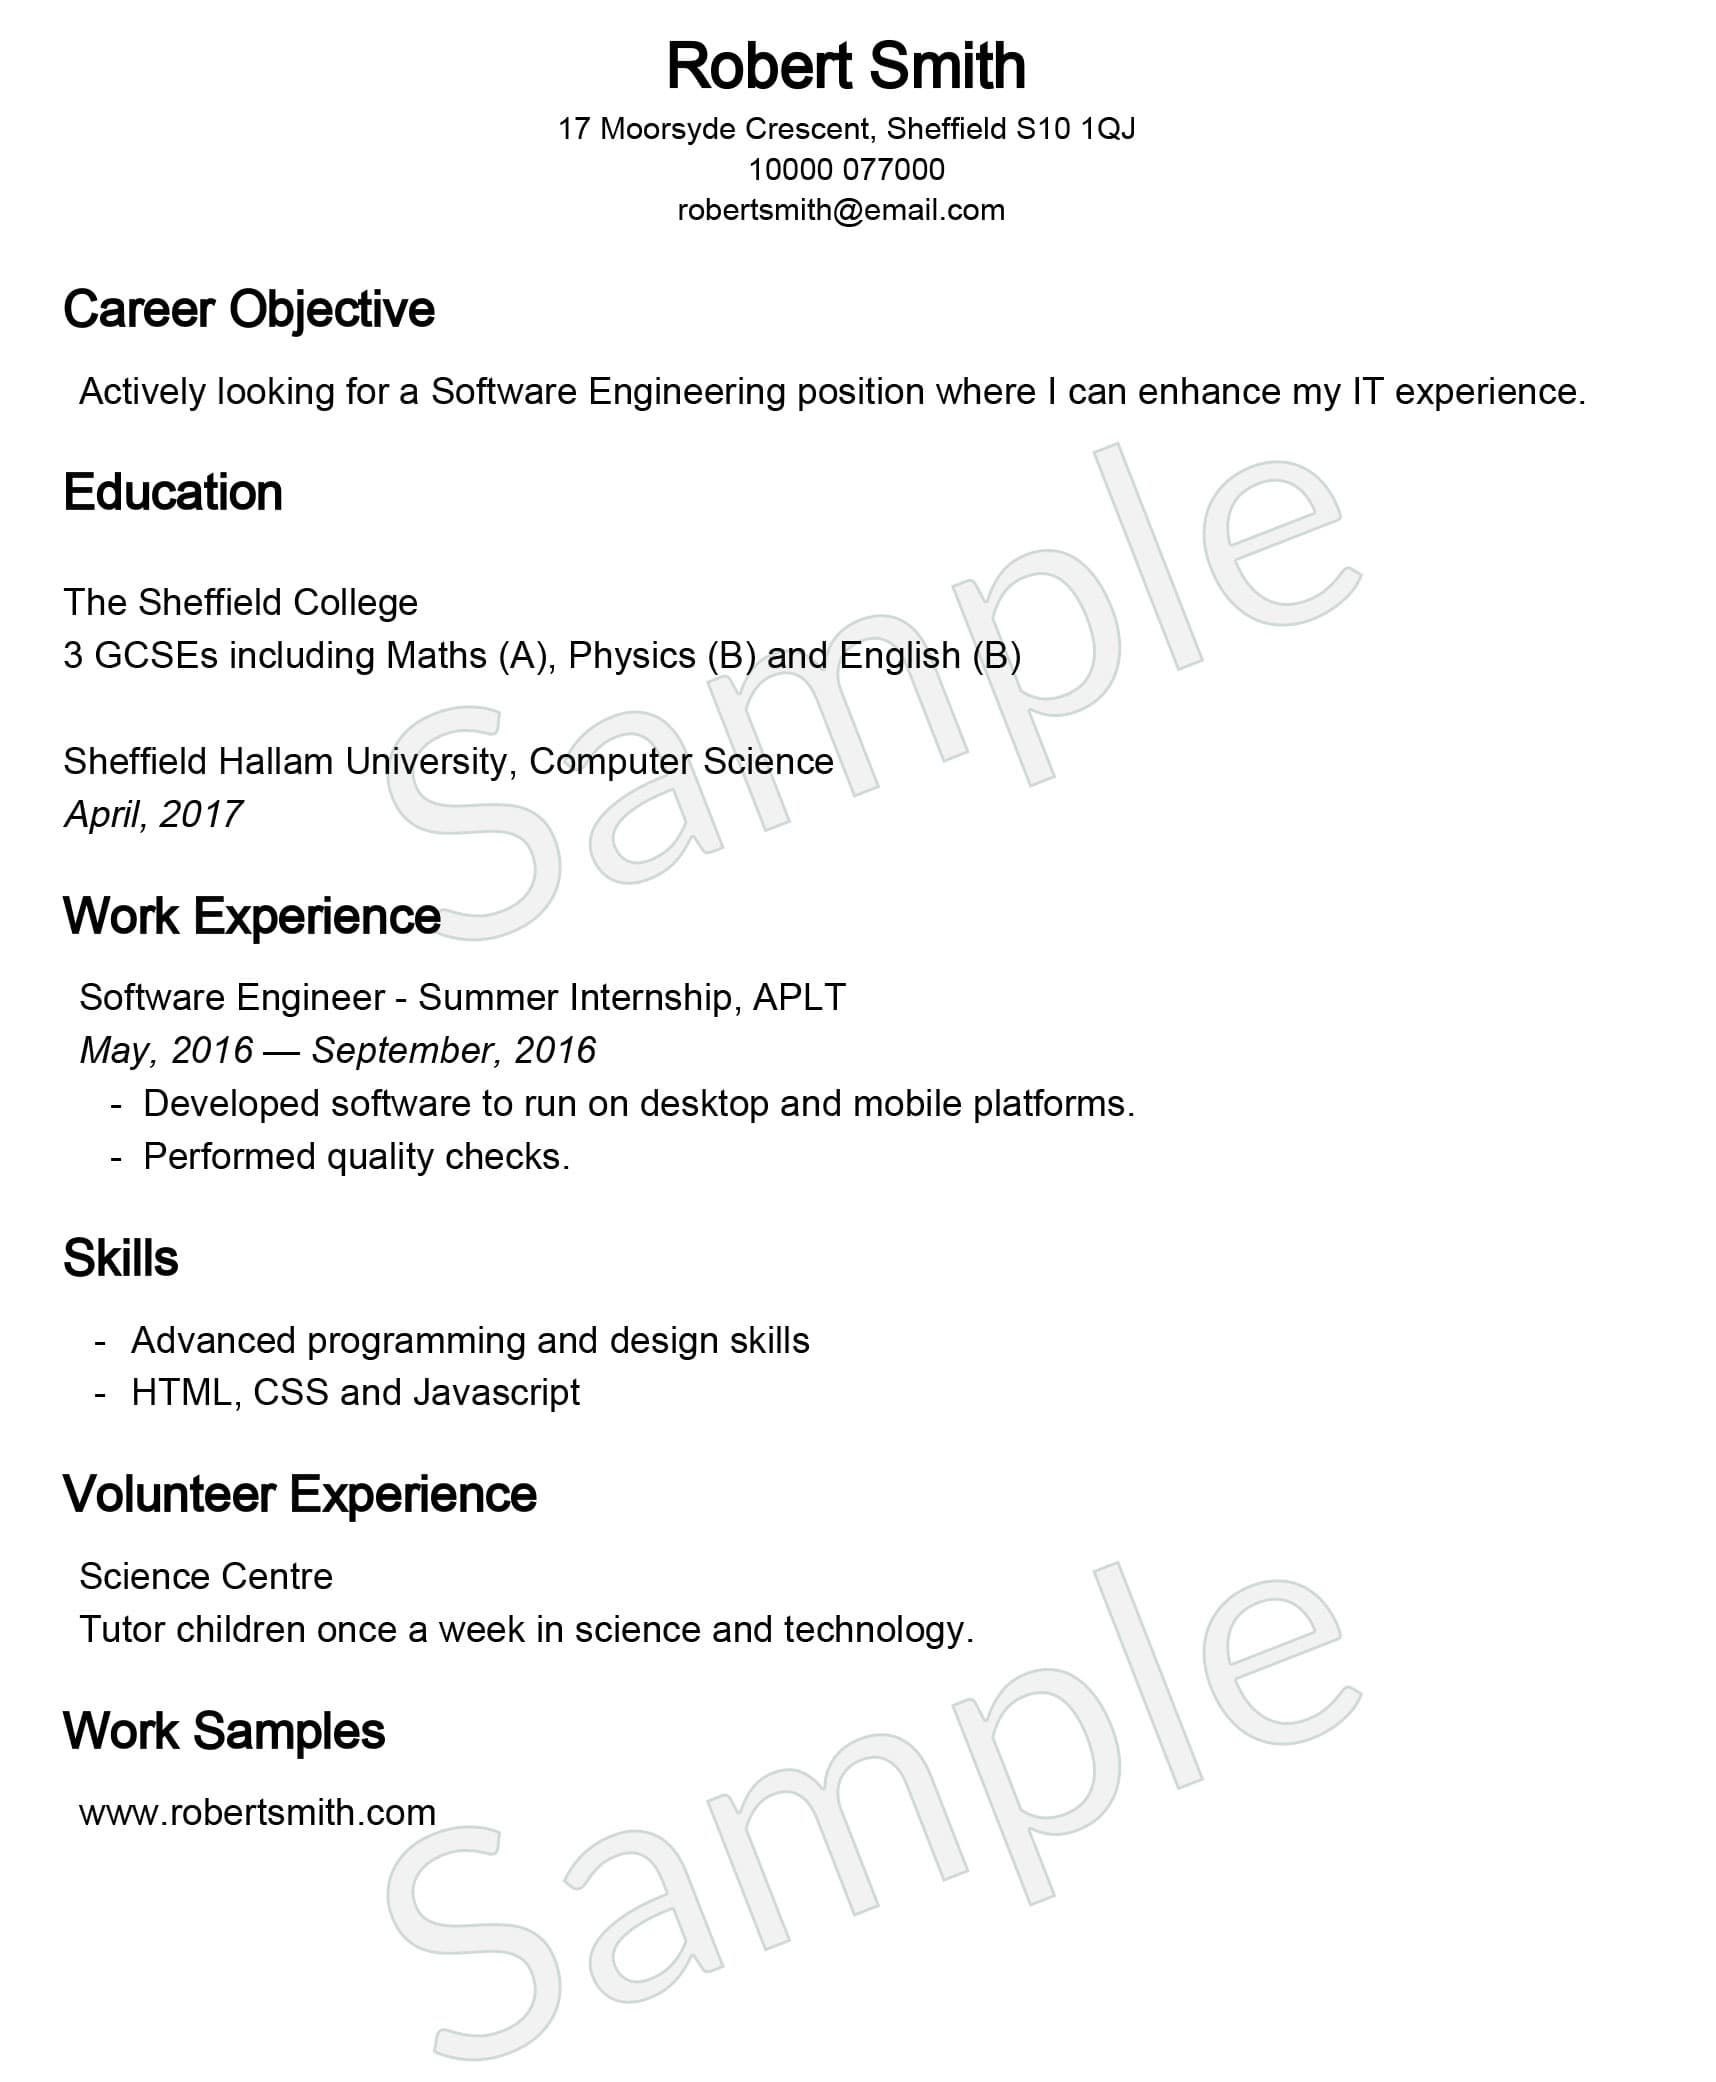 United Kingdom Curriculum Vitae Cv Example: CV Builder (UK)